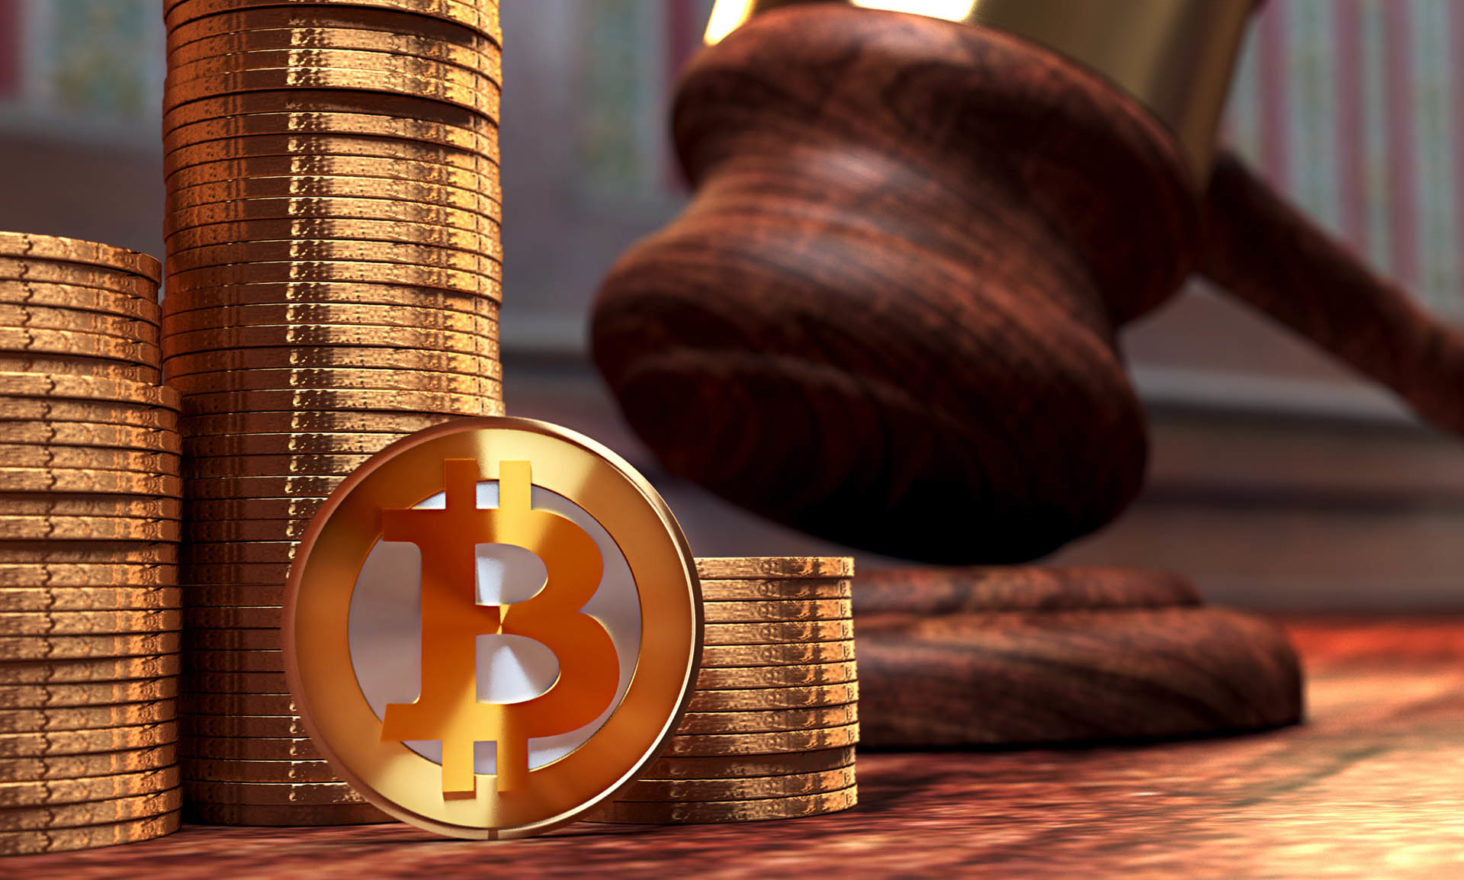 Convictions, Jail Time On The Rise In The U.S. For Selling Bitcoin